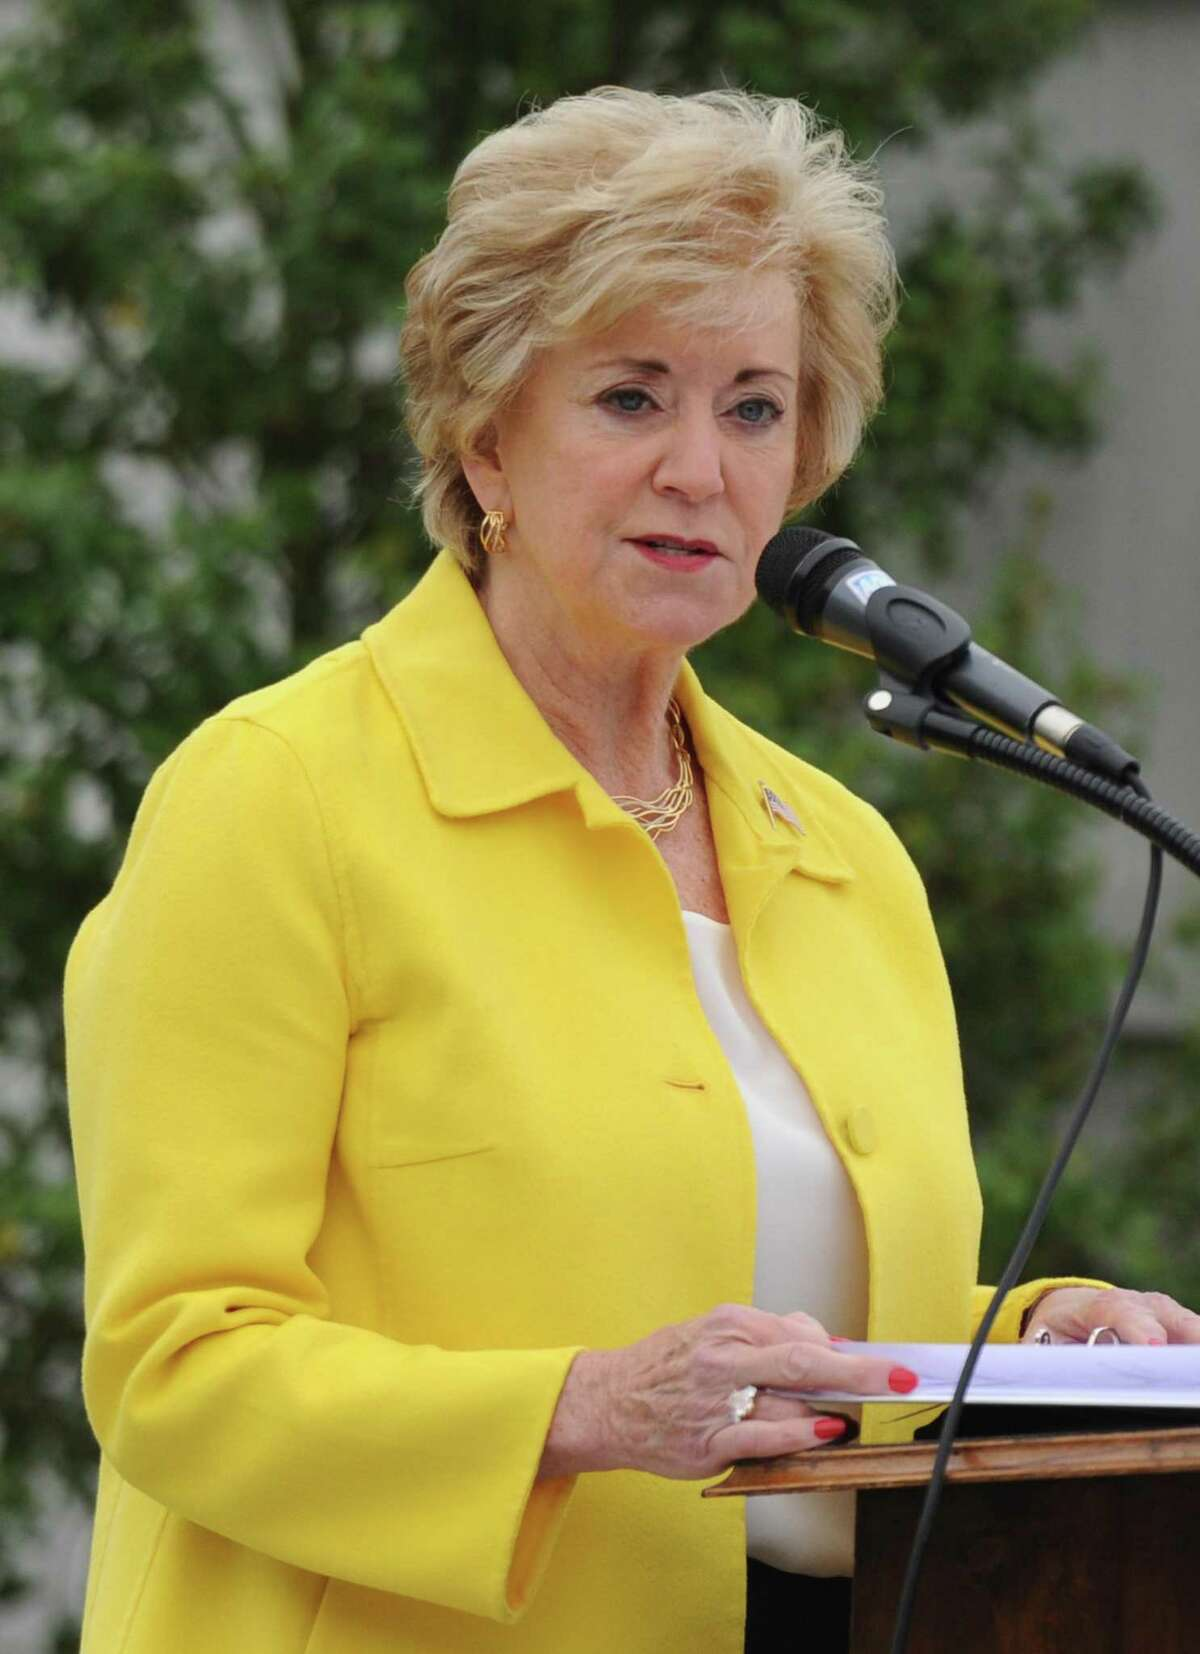 Linda McMahon, Administrator of the Small Business Administration